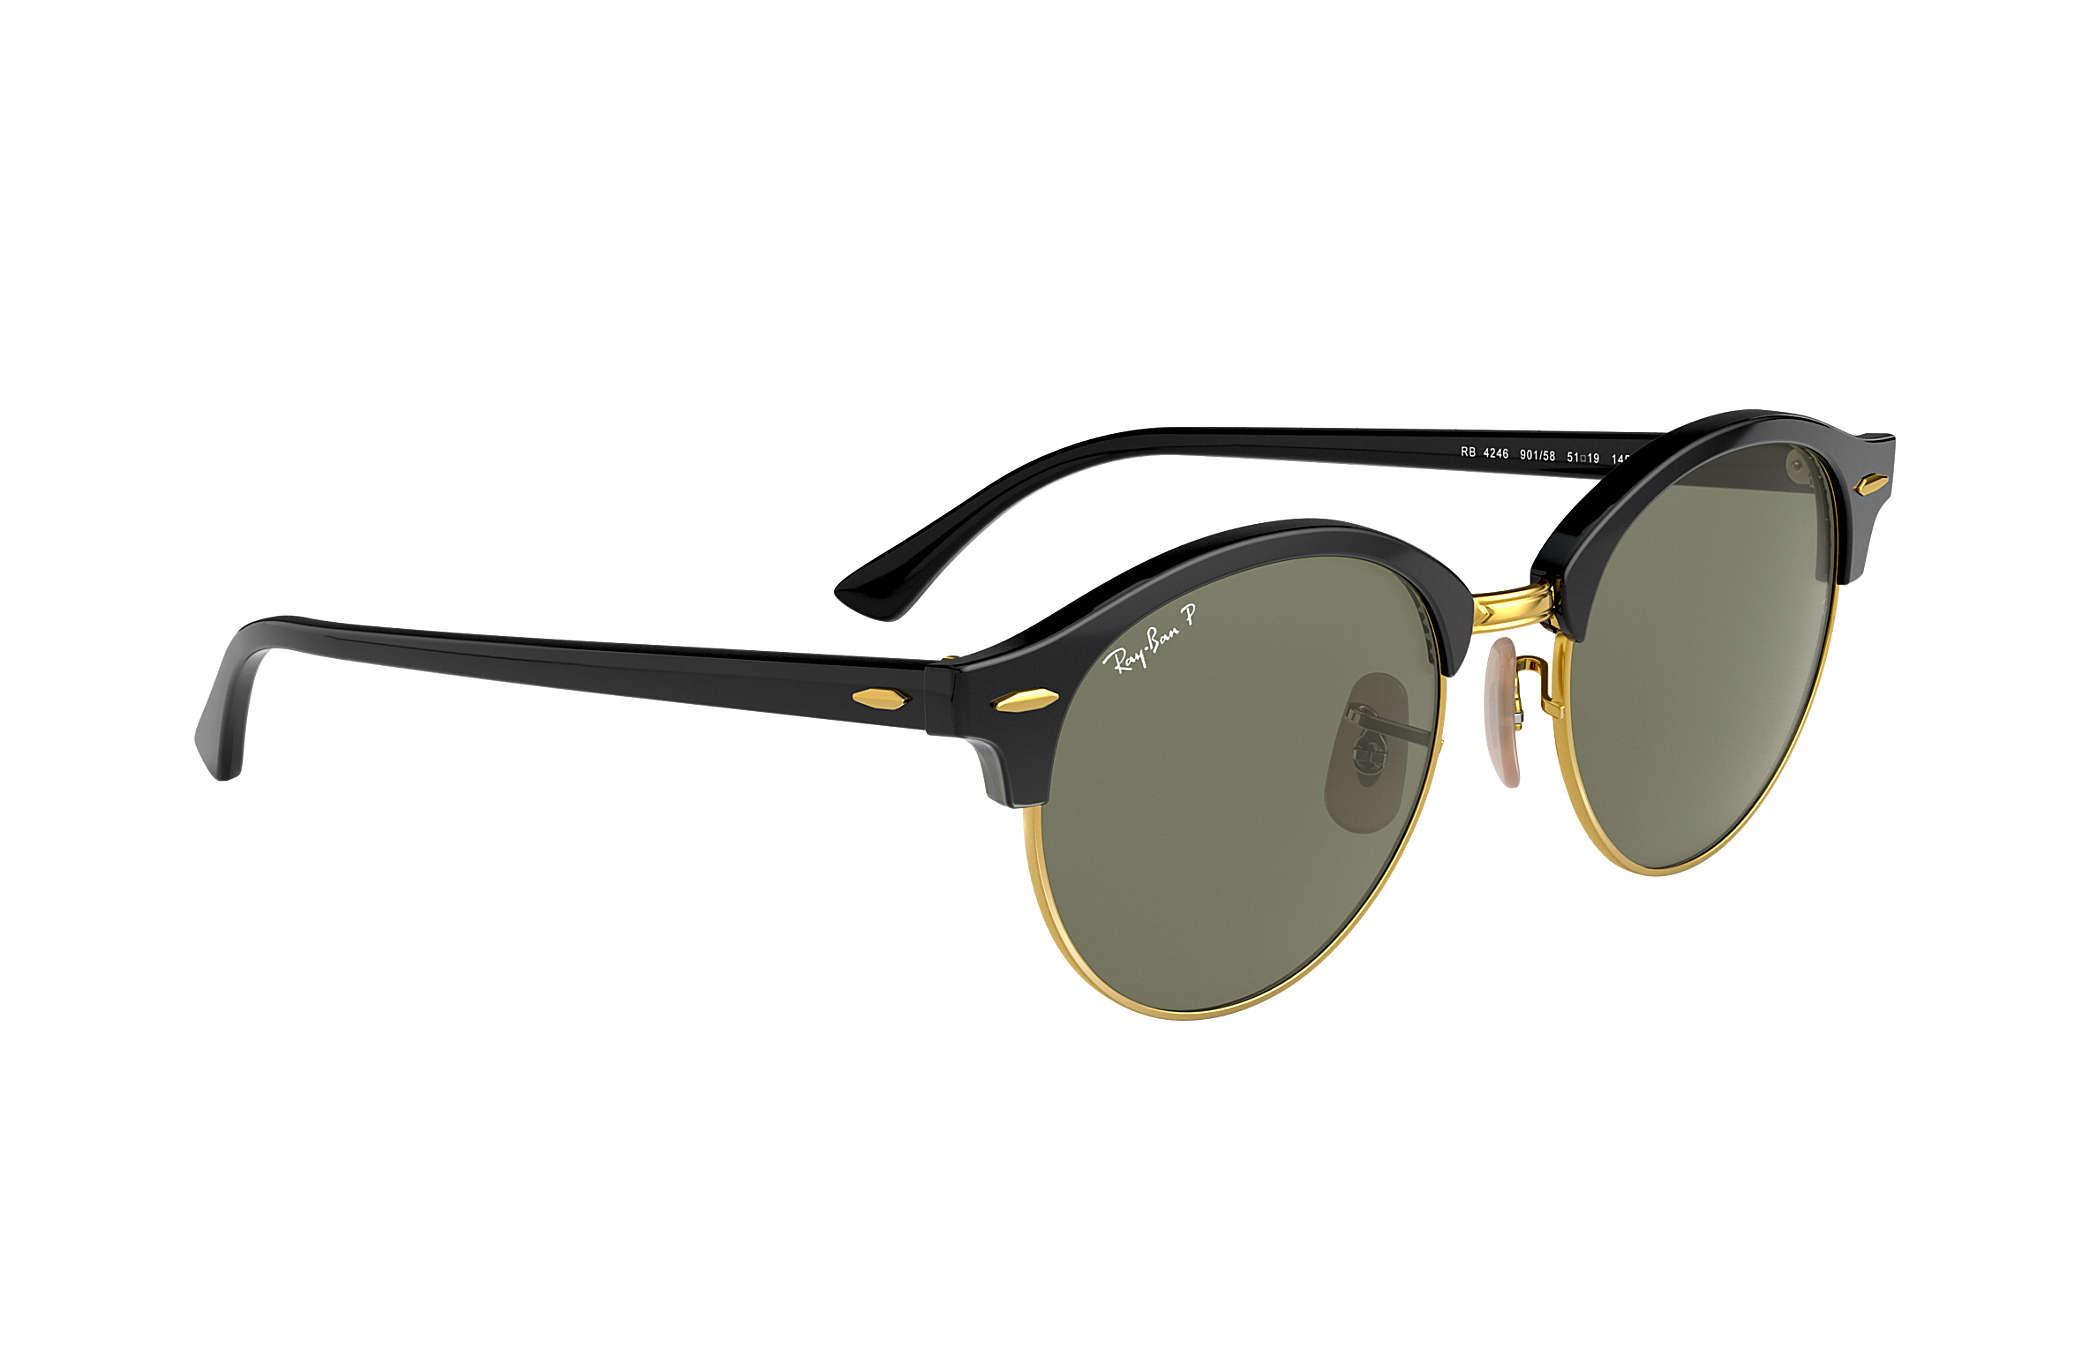 08db0a33d4324 Ray-Ban Clubround Classic RB4246 Black - Acetate - Green Polarized ...